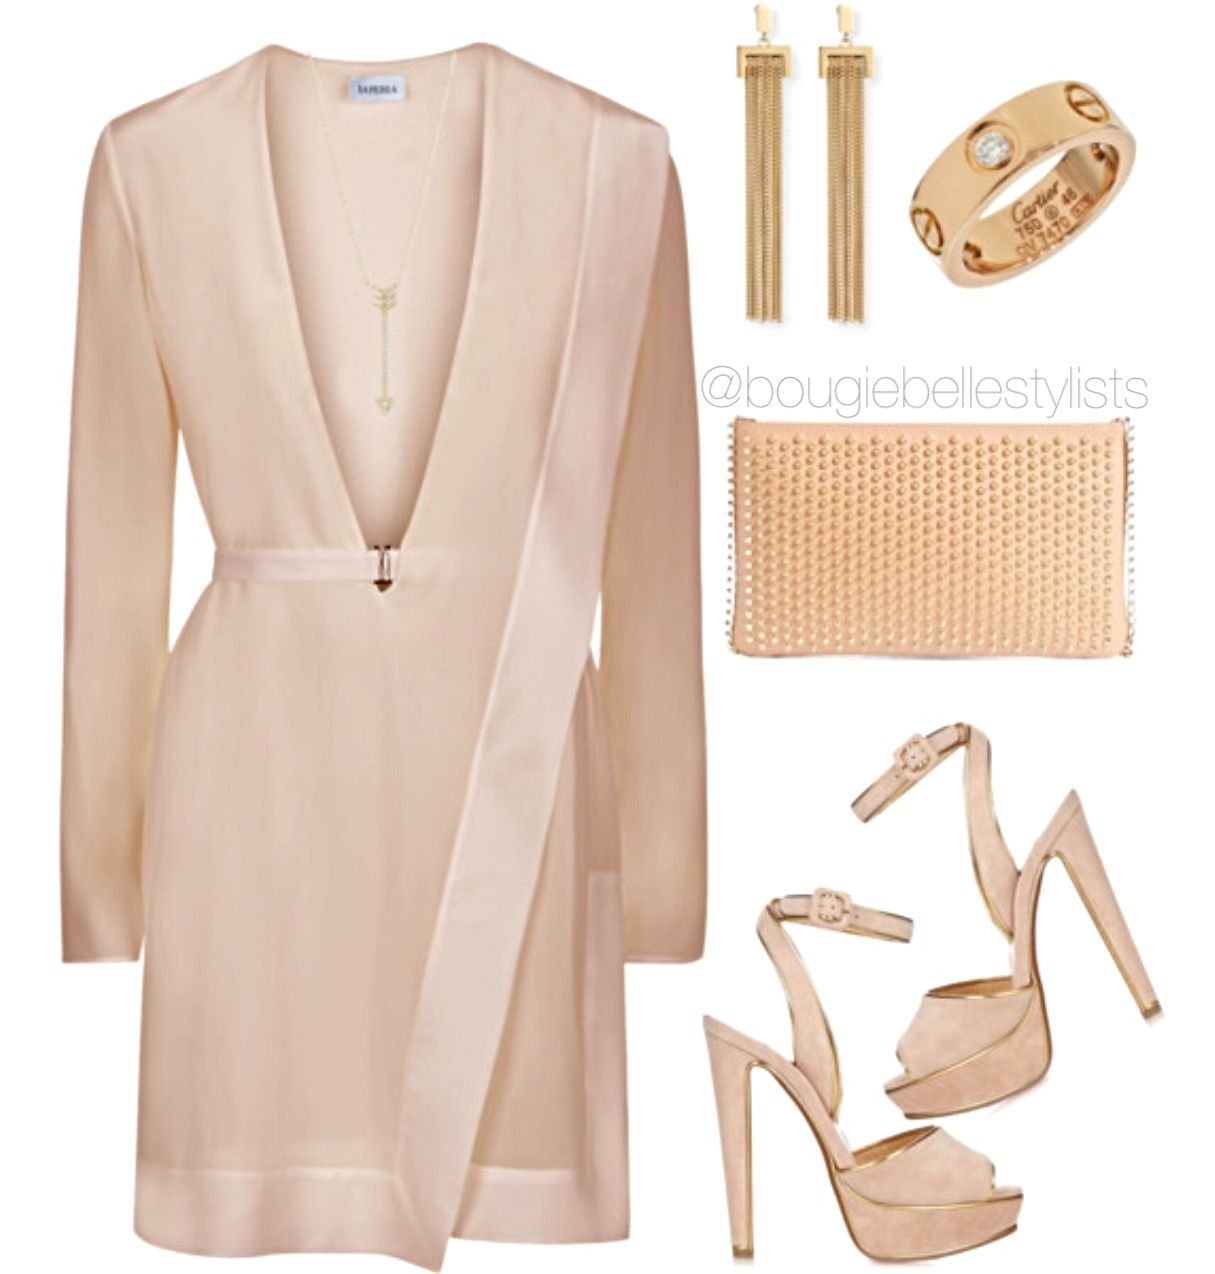 Contemporary elegant style for various Holiday Social. A subtle, understated signature appeal, emphasizing the delicate feminine attributes, to a refreshing option of the Little Black Dress. Therefore, allowing the gold accessories to accent the contrast of soft nude hues which are perfect on all skin tones. #shopthelook #bougiebelle #askforanji #laperla #cartier #chloe #christianlouboutin #efcollection